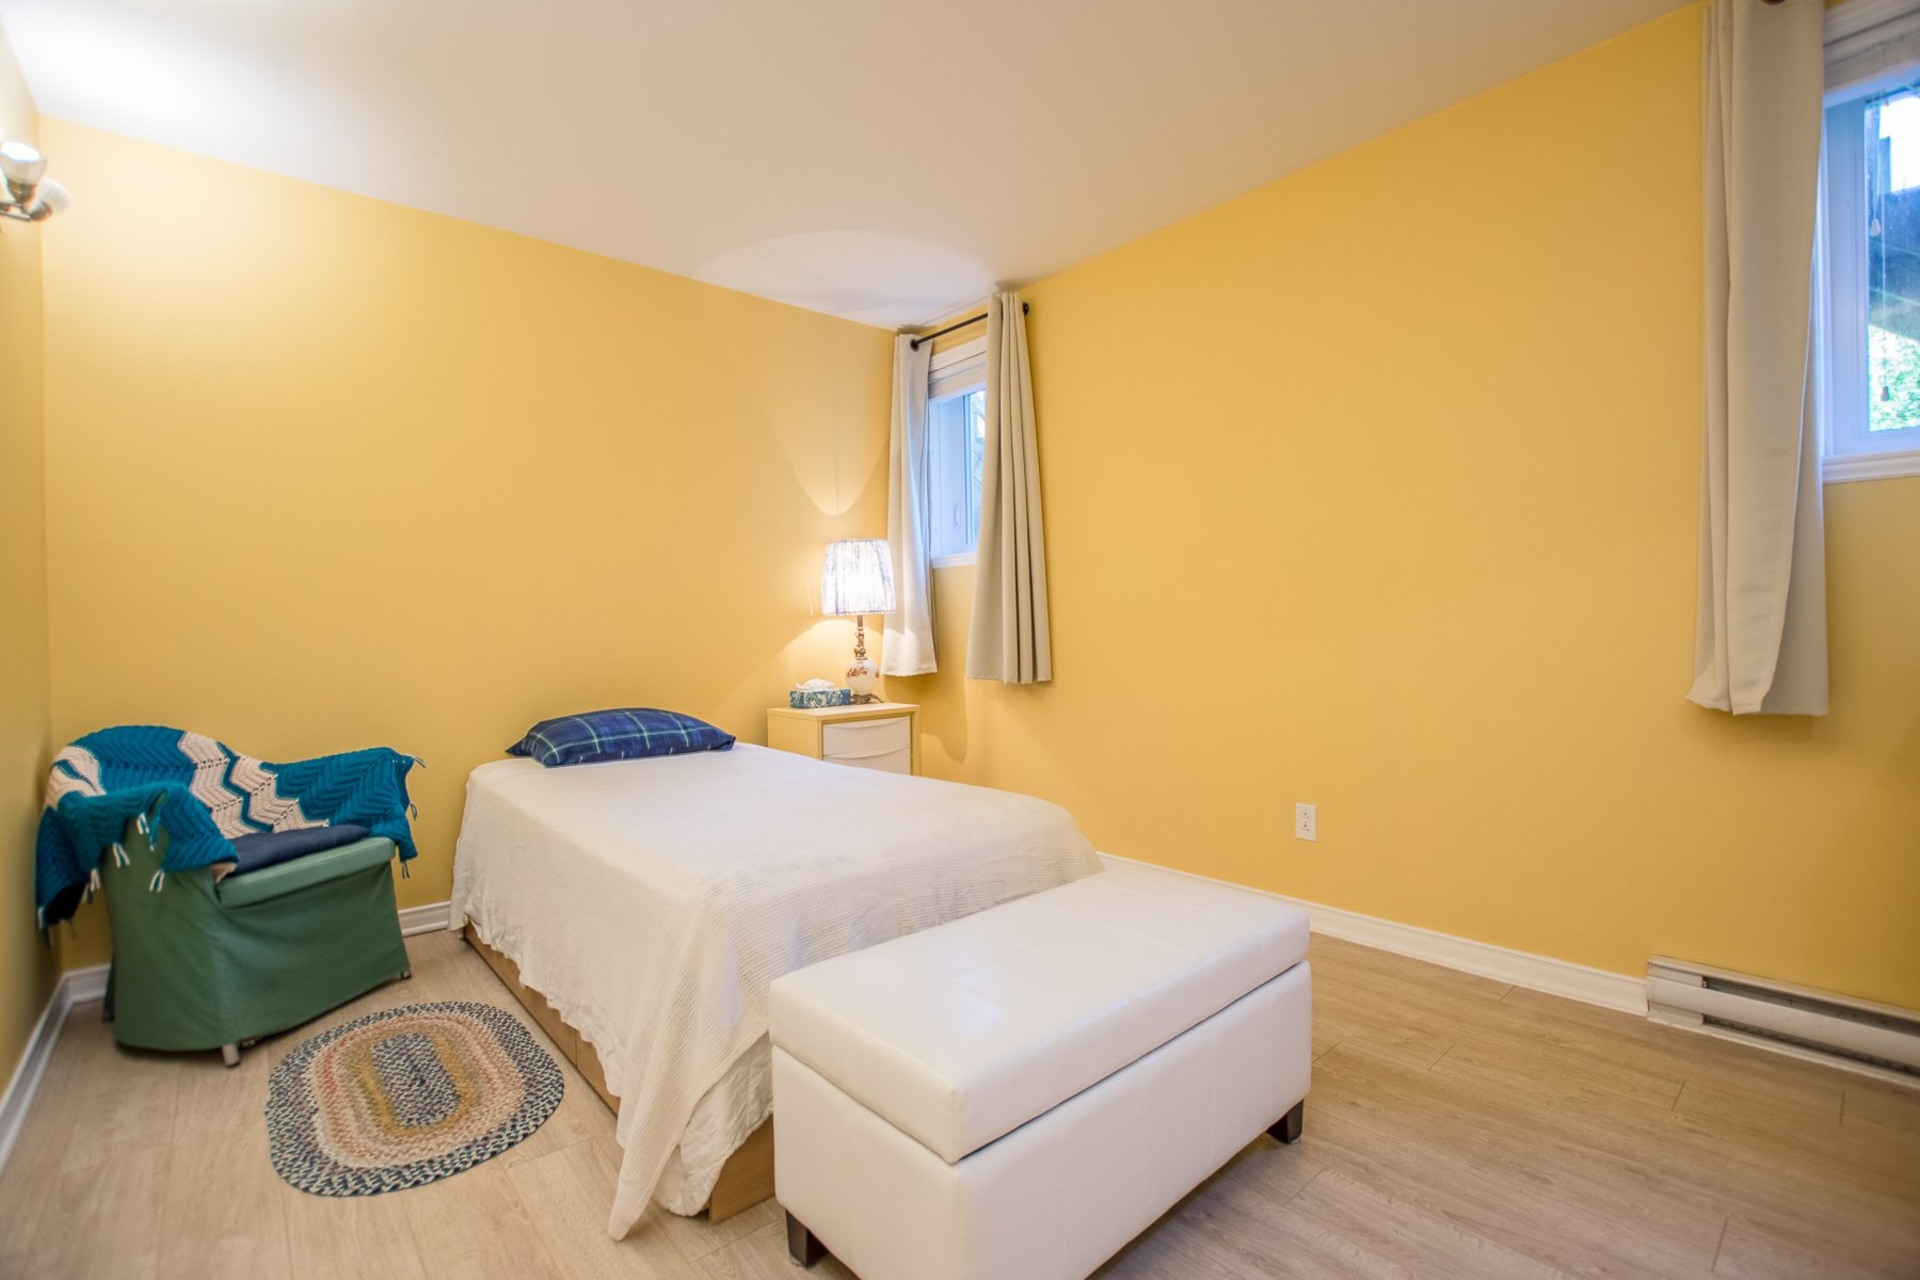 image 11 - Apartment For sale Châteauguay - 4 rooms